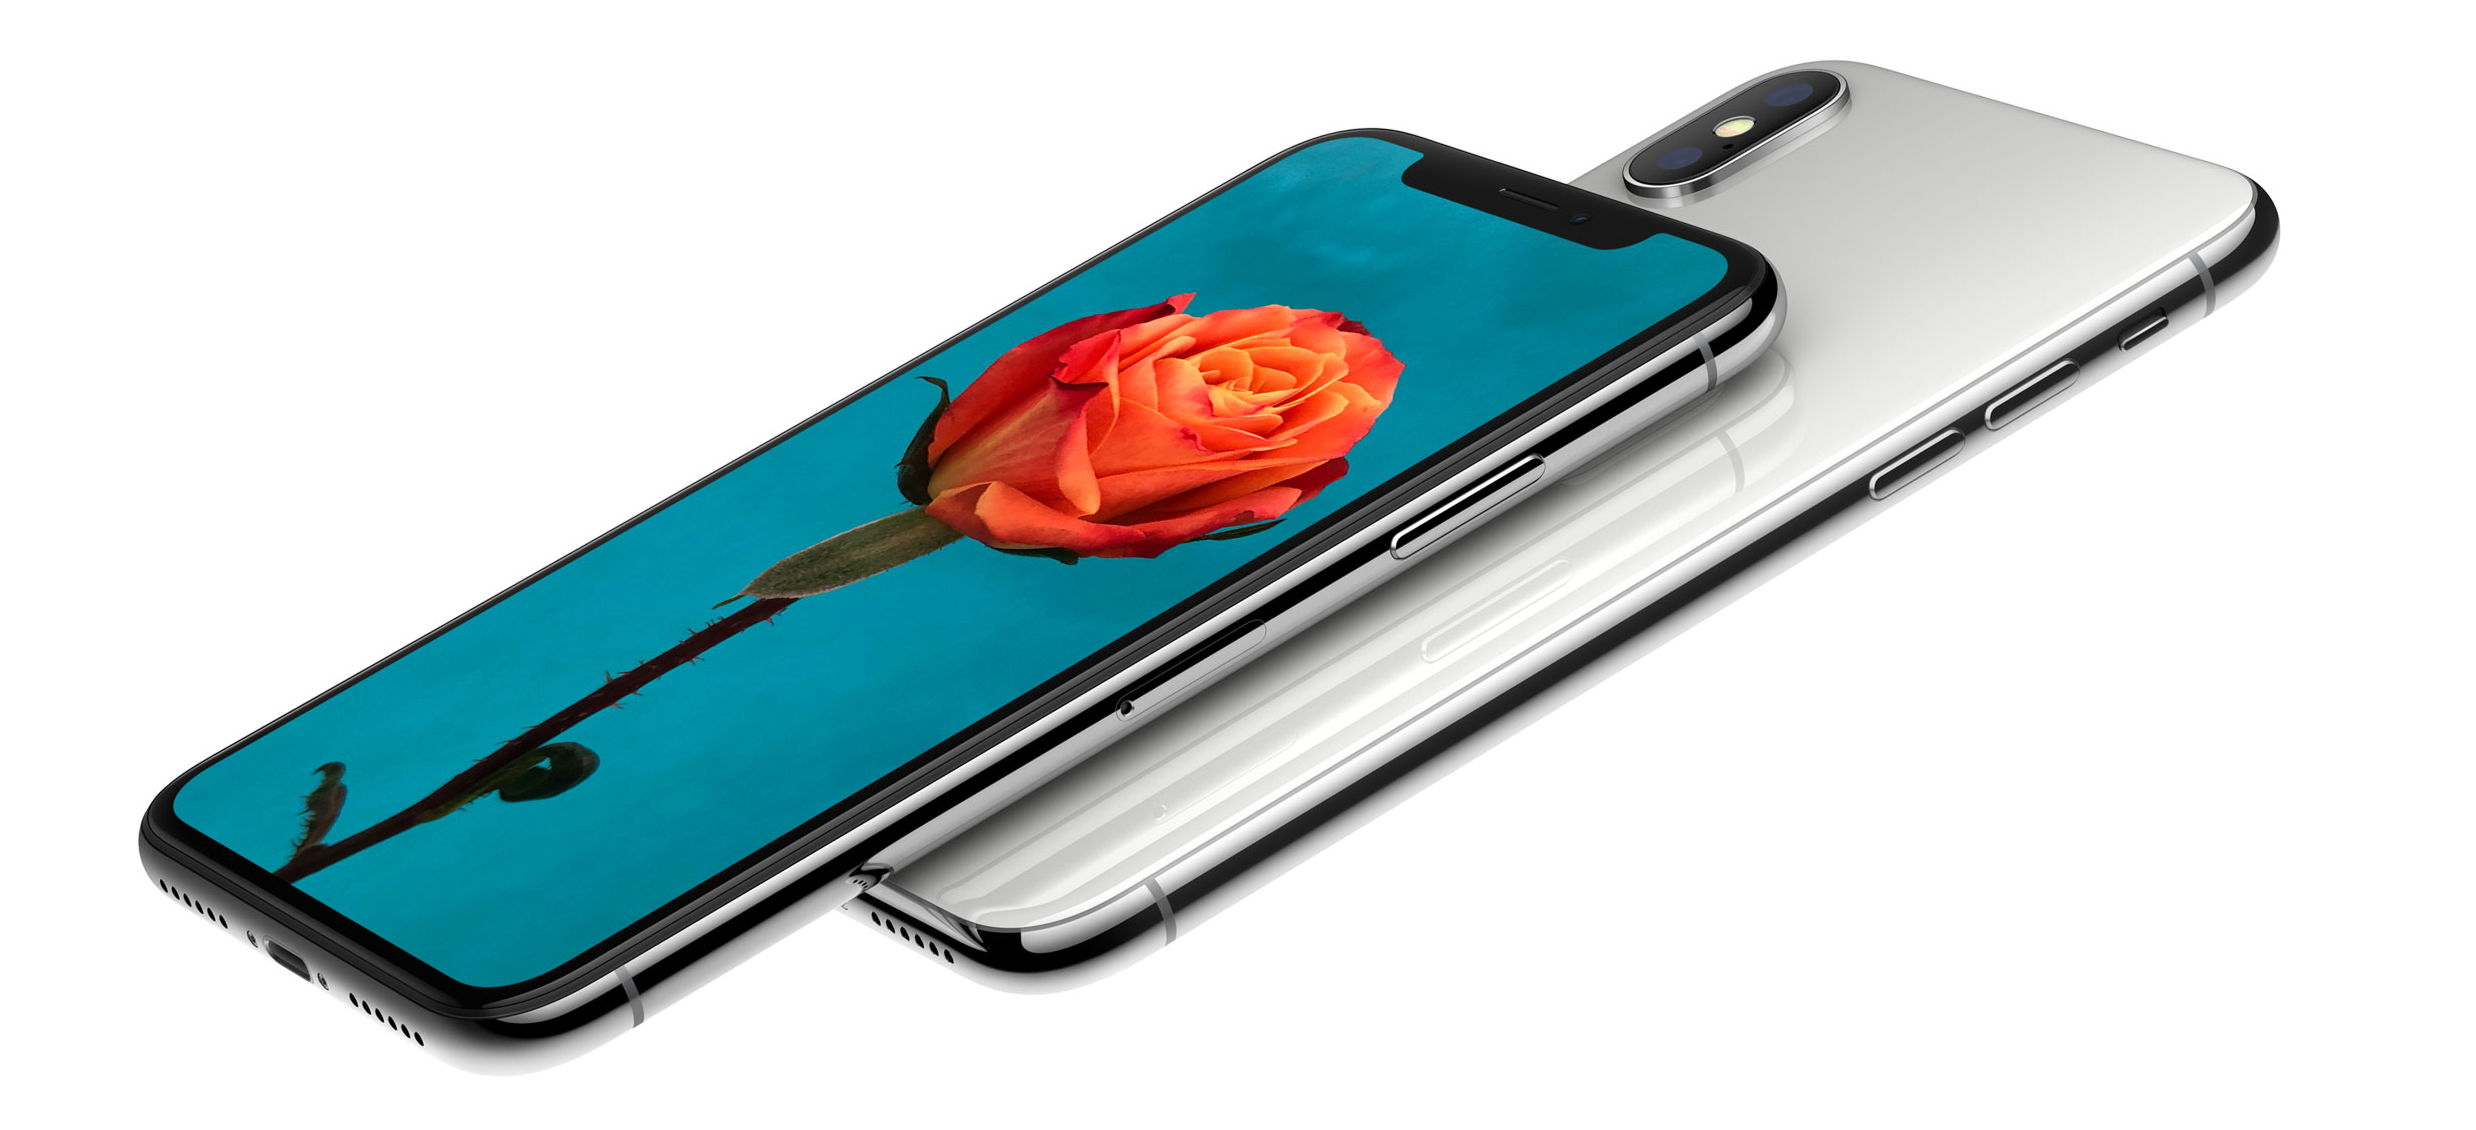 Side view of iPhone X with a flower on the display